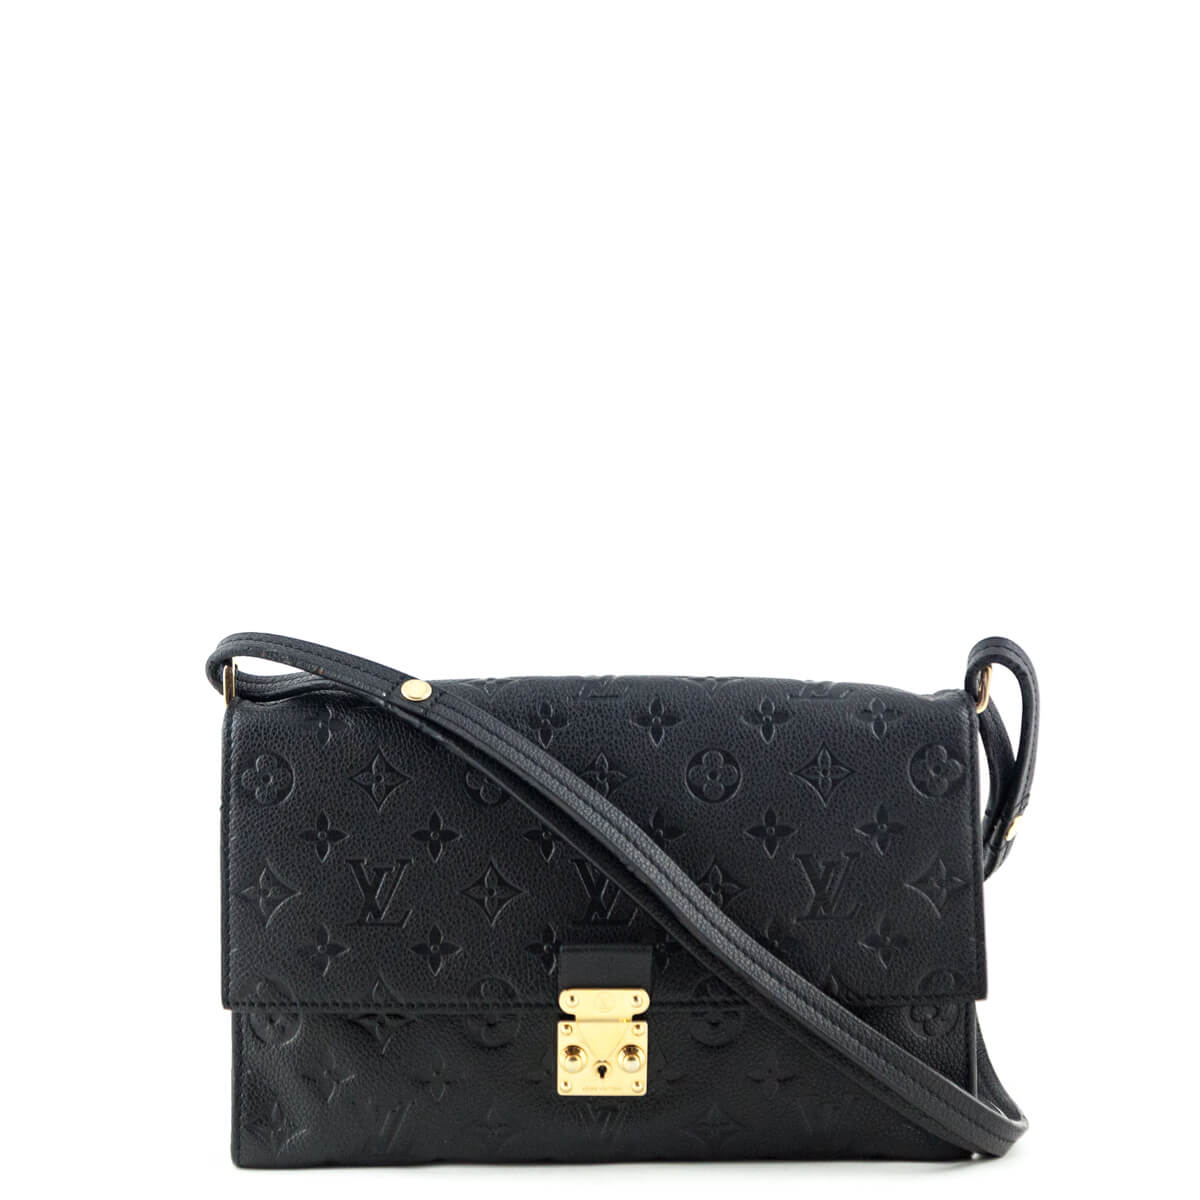 cfbb220a5d44 Louis Vuitton Black Empreinte Fascinante Bag - LOVE that BAG - Preowned  Authentic Designer Handbags ...